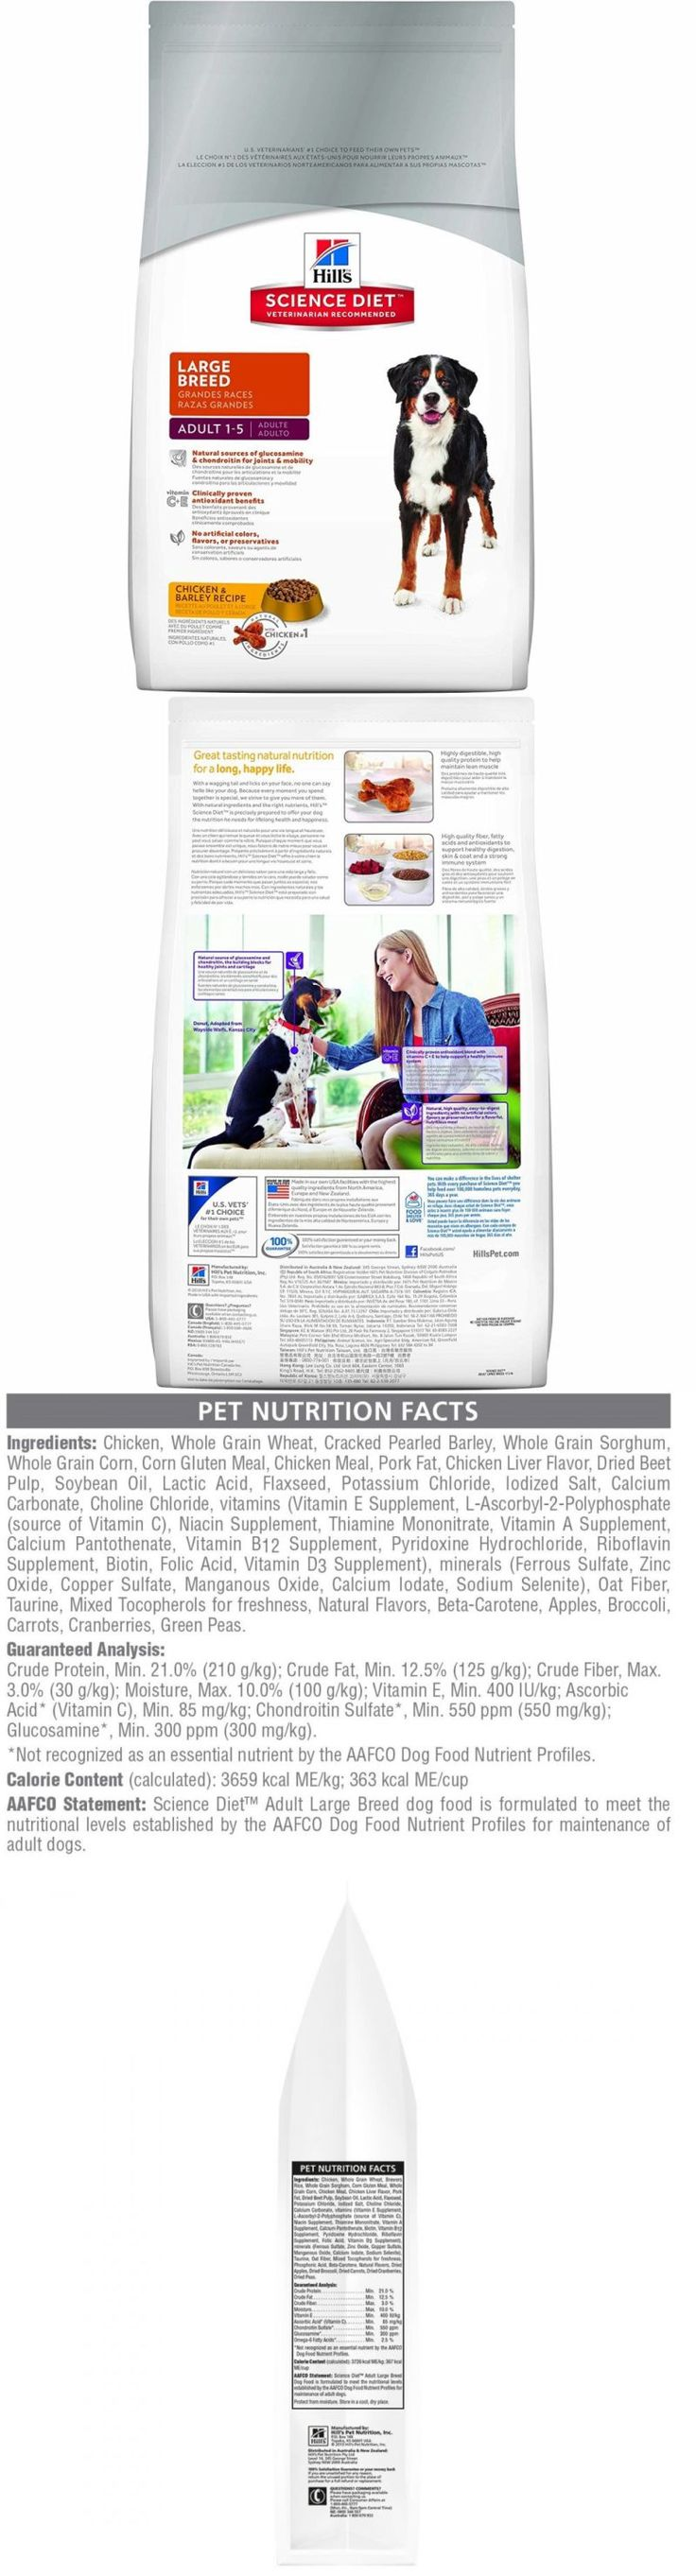 Dog Food 66780: Hills Science Diet Large Breed Dry Dog Food - 17.5 Lbs BUY IT NOW ONLY: $34.06